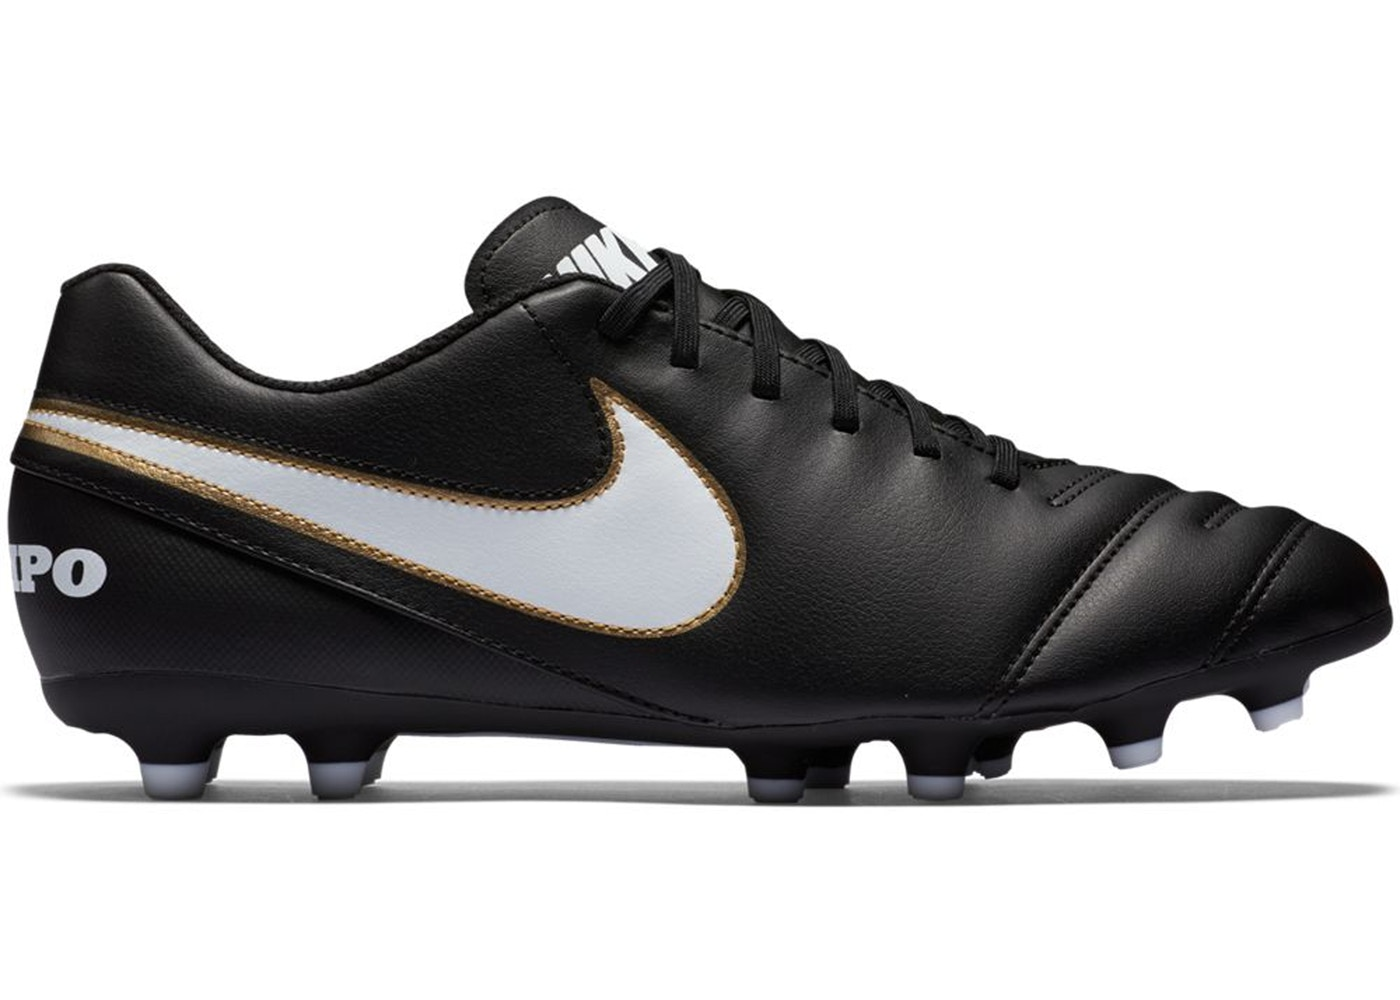 99b9afcf7 Sell. or Ask. Size: 11. View All Bids. Nike Tiempo Rio III ...